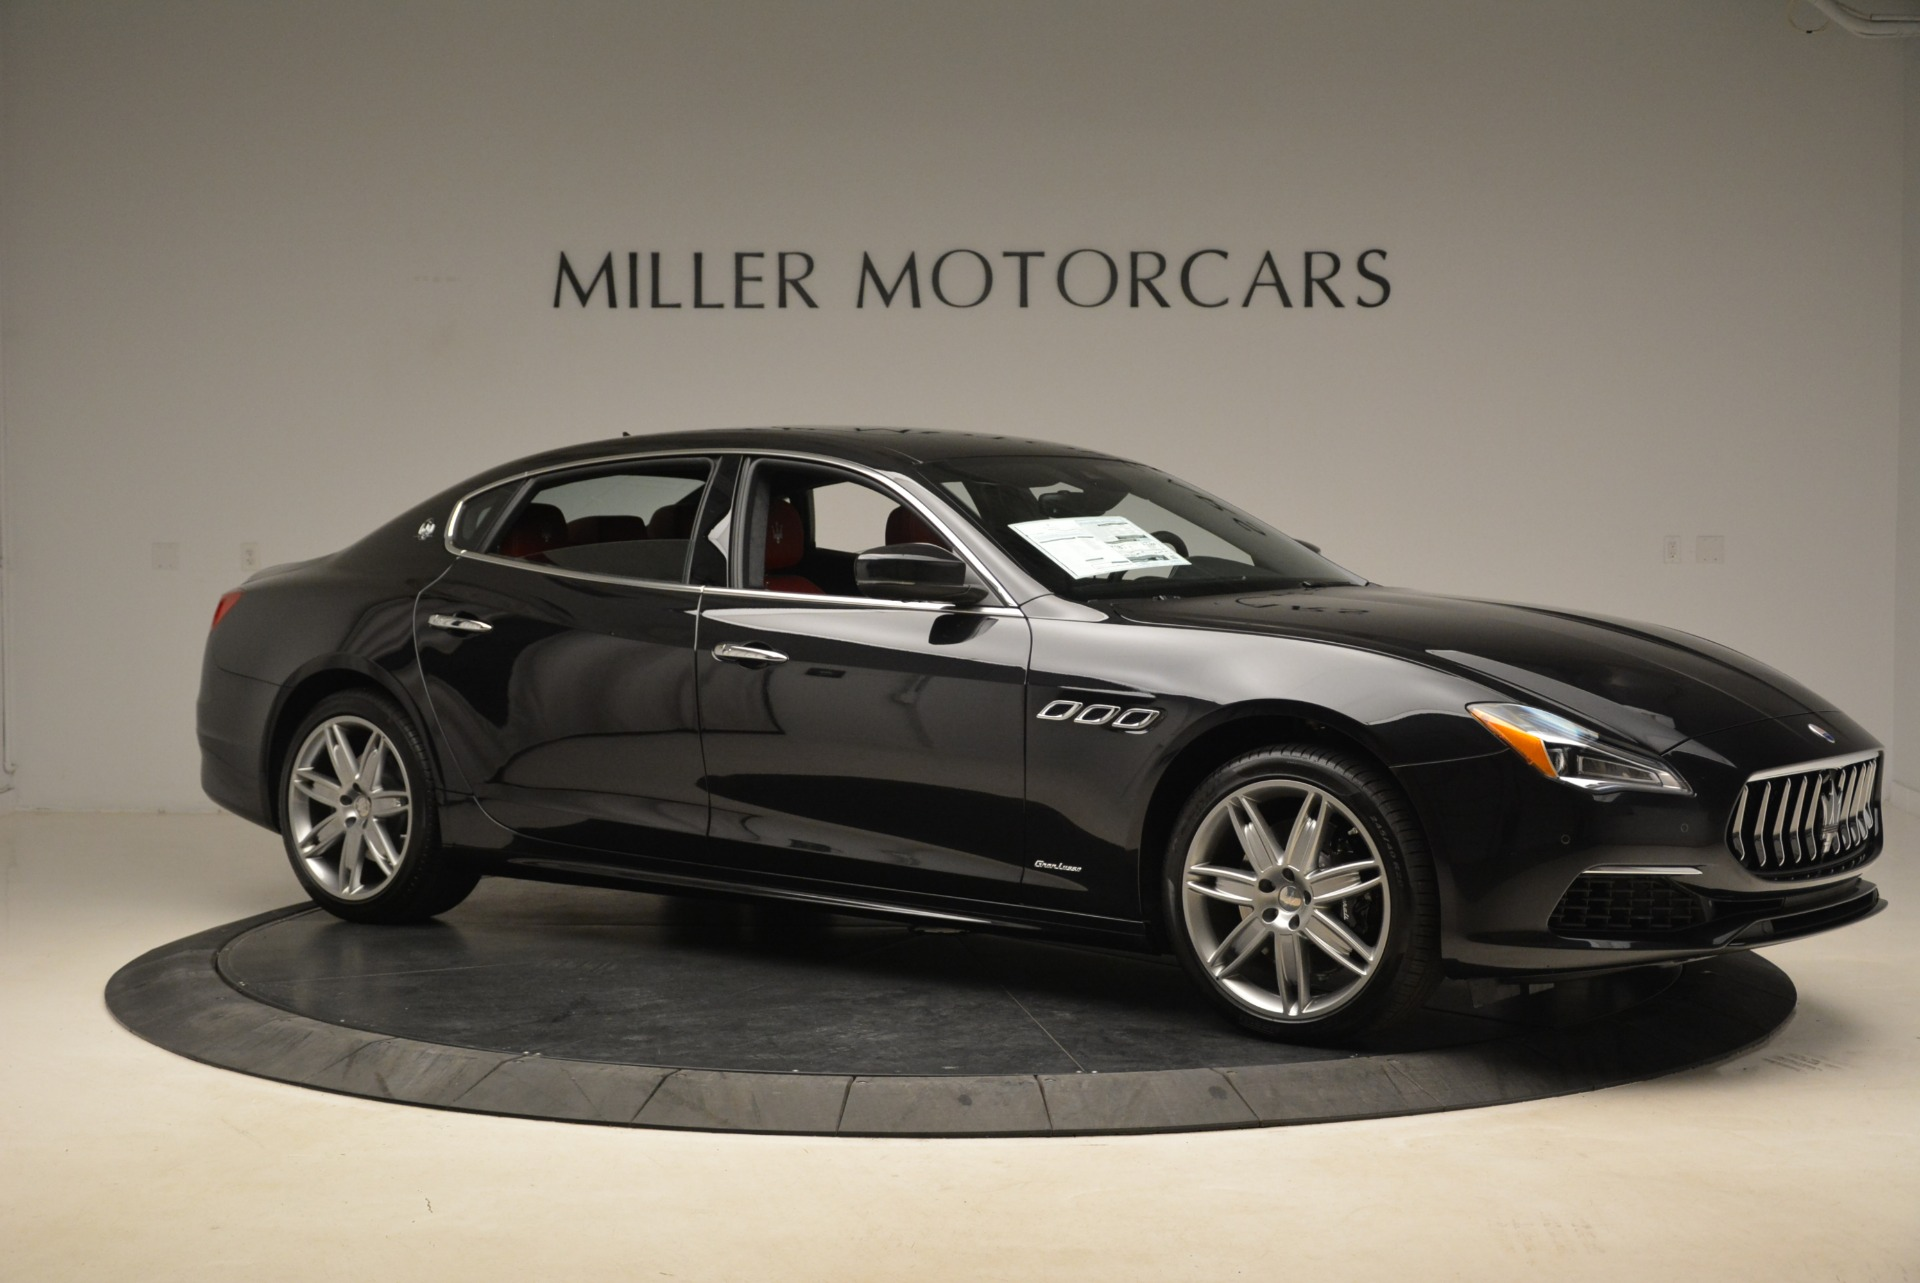 New 2018 Maserati Quattroporte S Q4 GranLusso For Sale In Greenwich, CT. Alfa Romeo of Greenwich, M2176 2391_p10